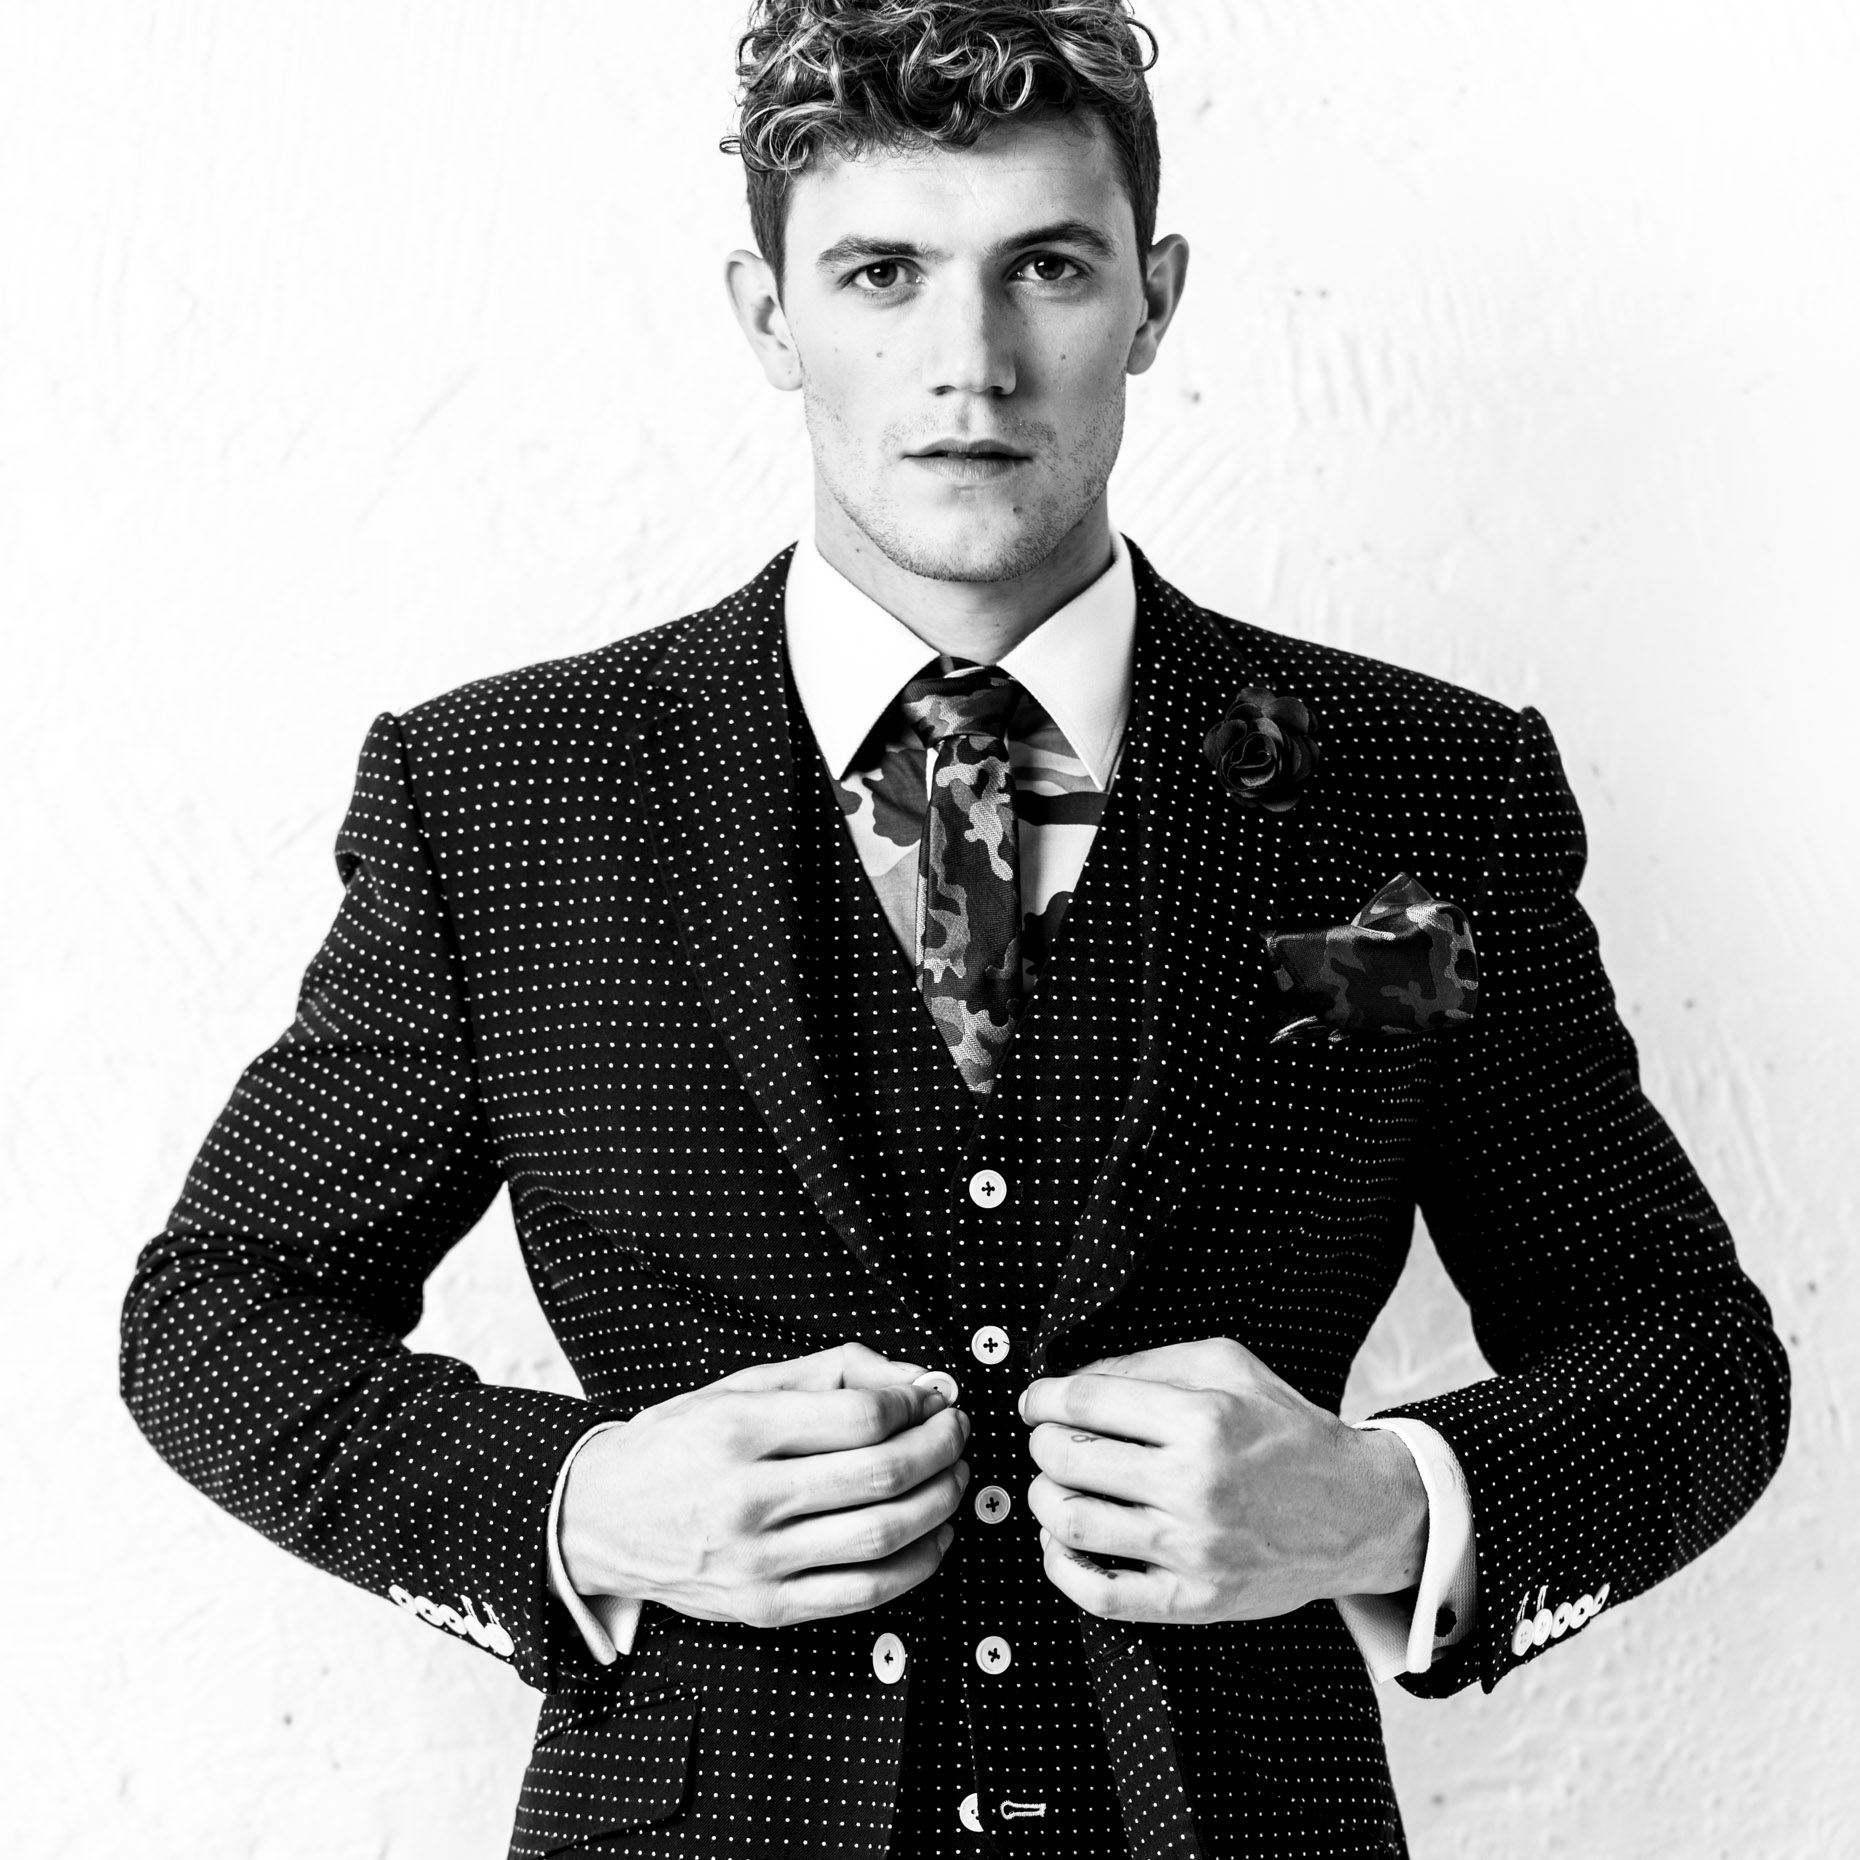 jake_ss2016_hourglass_blue_polkadot_suit_mens_0118